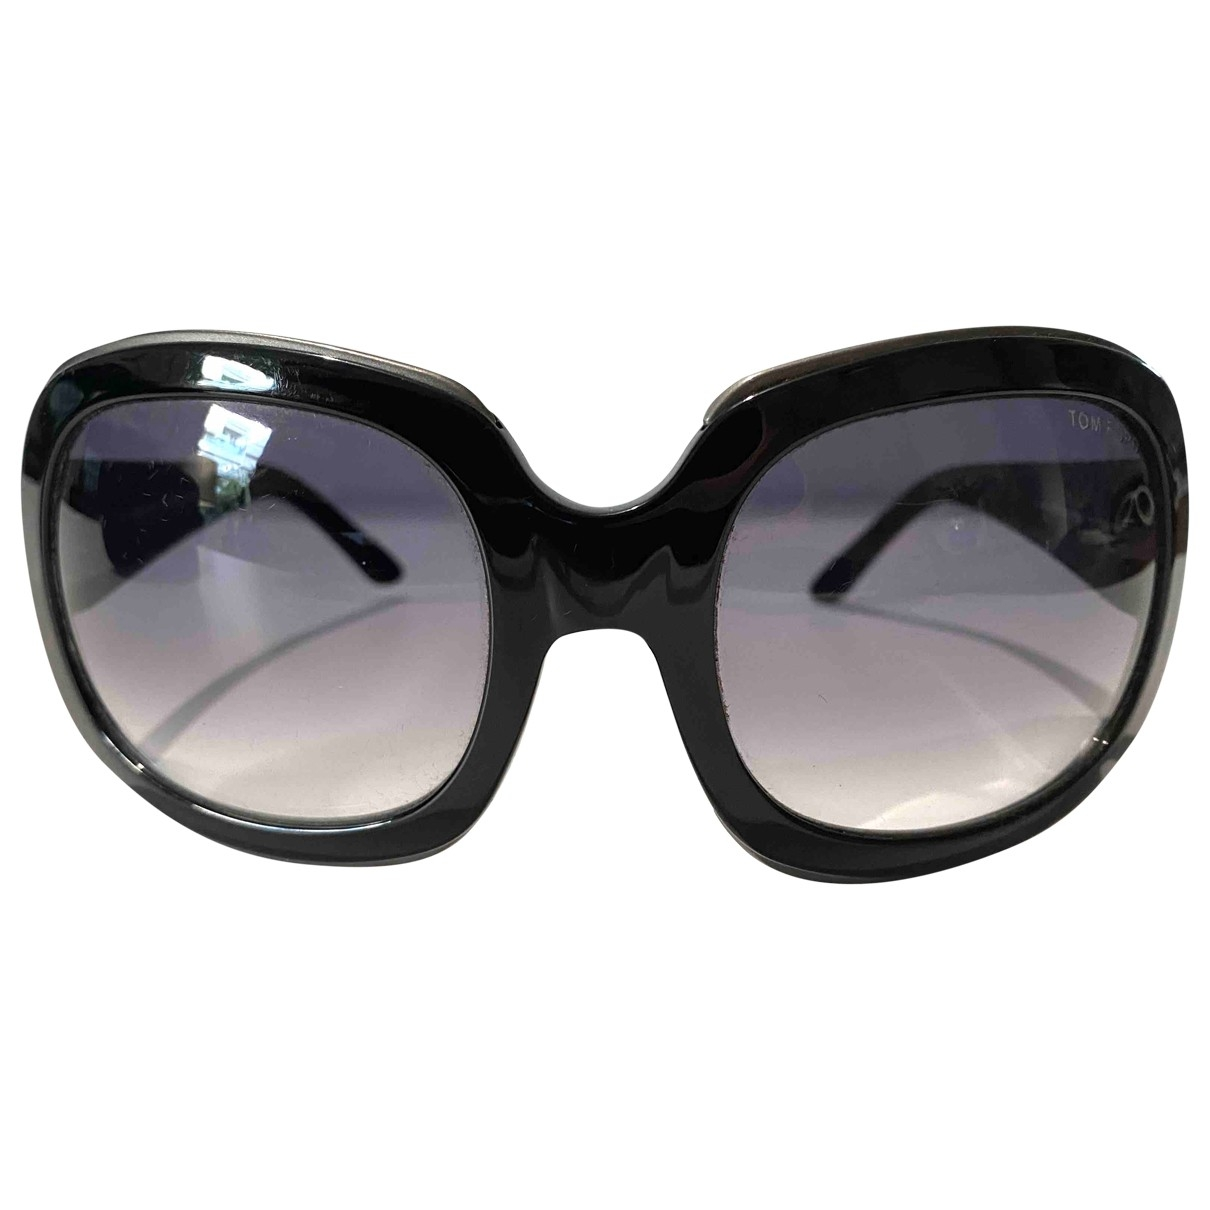 Gafas oversize Tom Ford